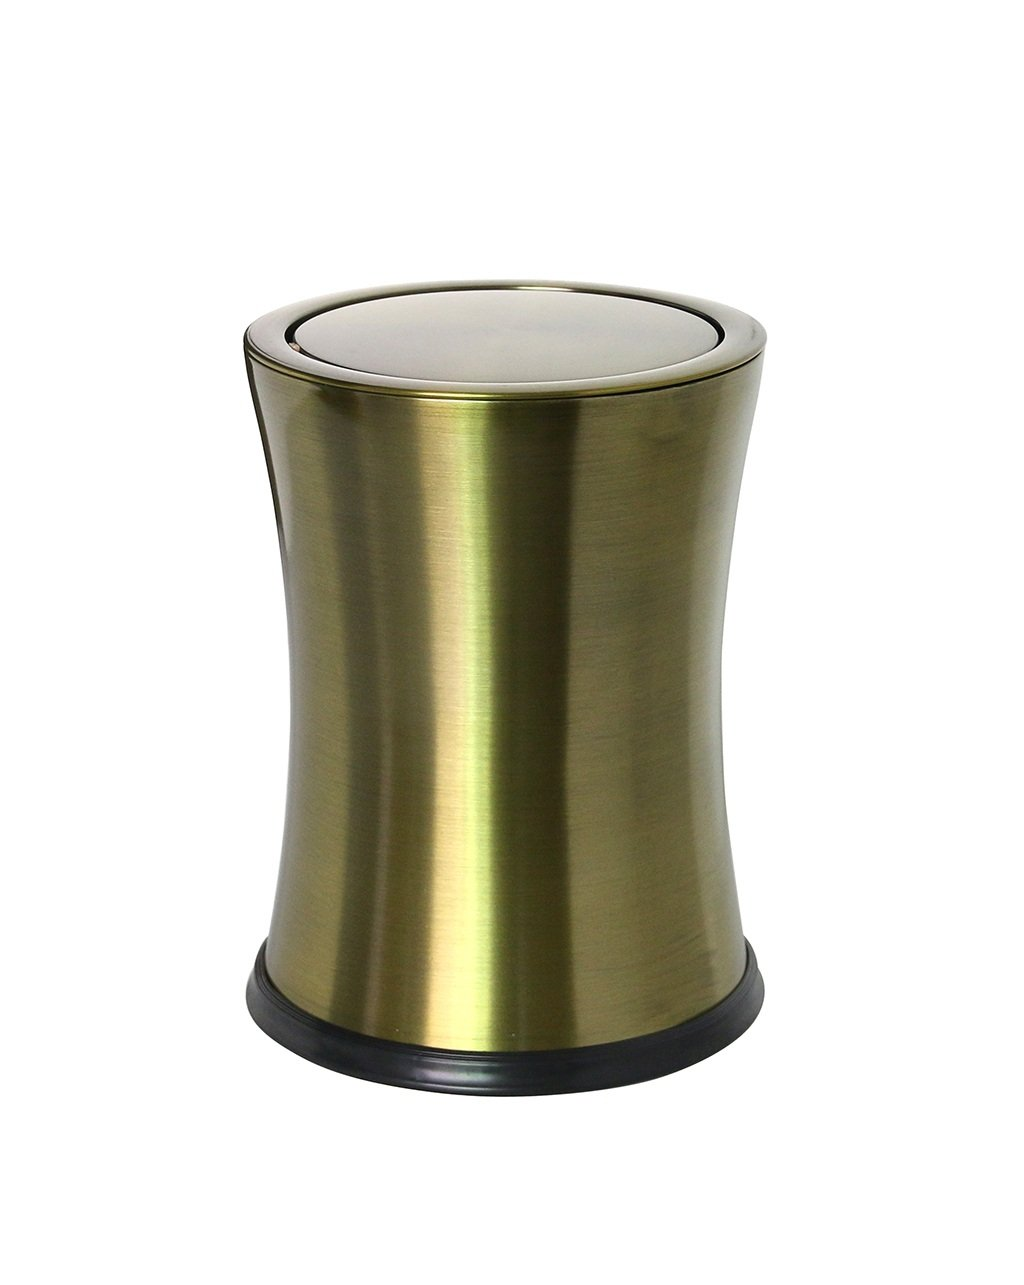 CSQ Stainless Steel Trash Can, Shake Cover Trash Can Metal Flip Cover Trash Can Creative Household Bathroom Bedroom Storage Bucket 2230CM Indoor by Outdoor trash can (Image #1)